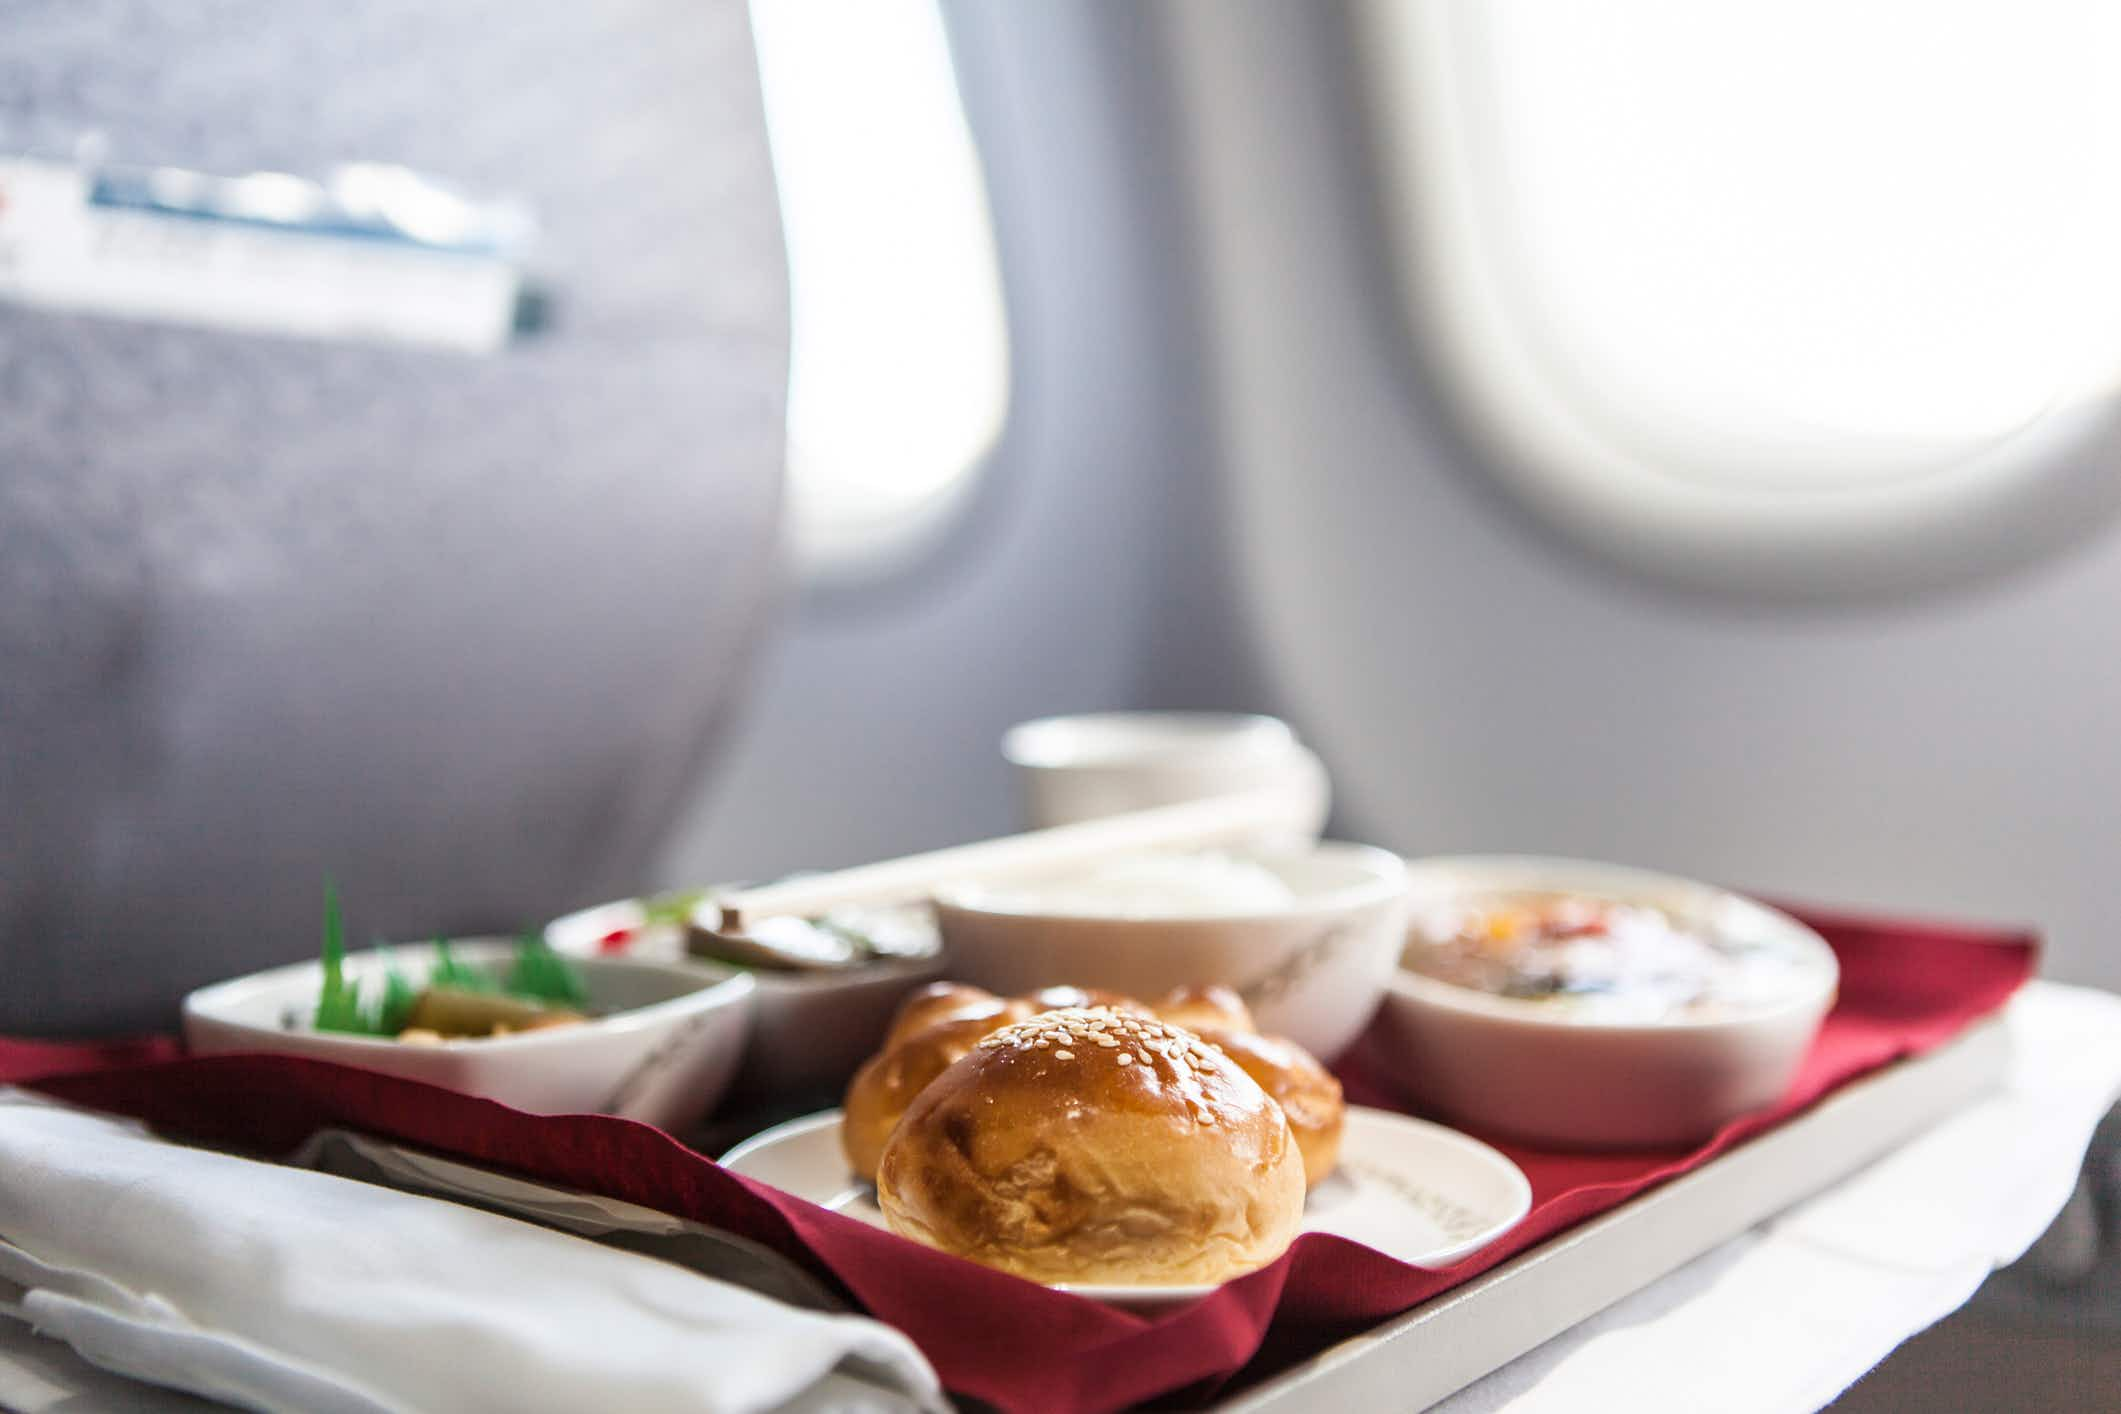 Airline staff share their tips on how to keep healthy while flying